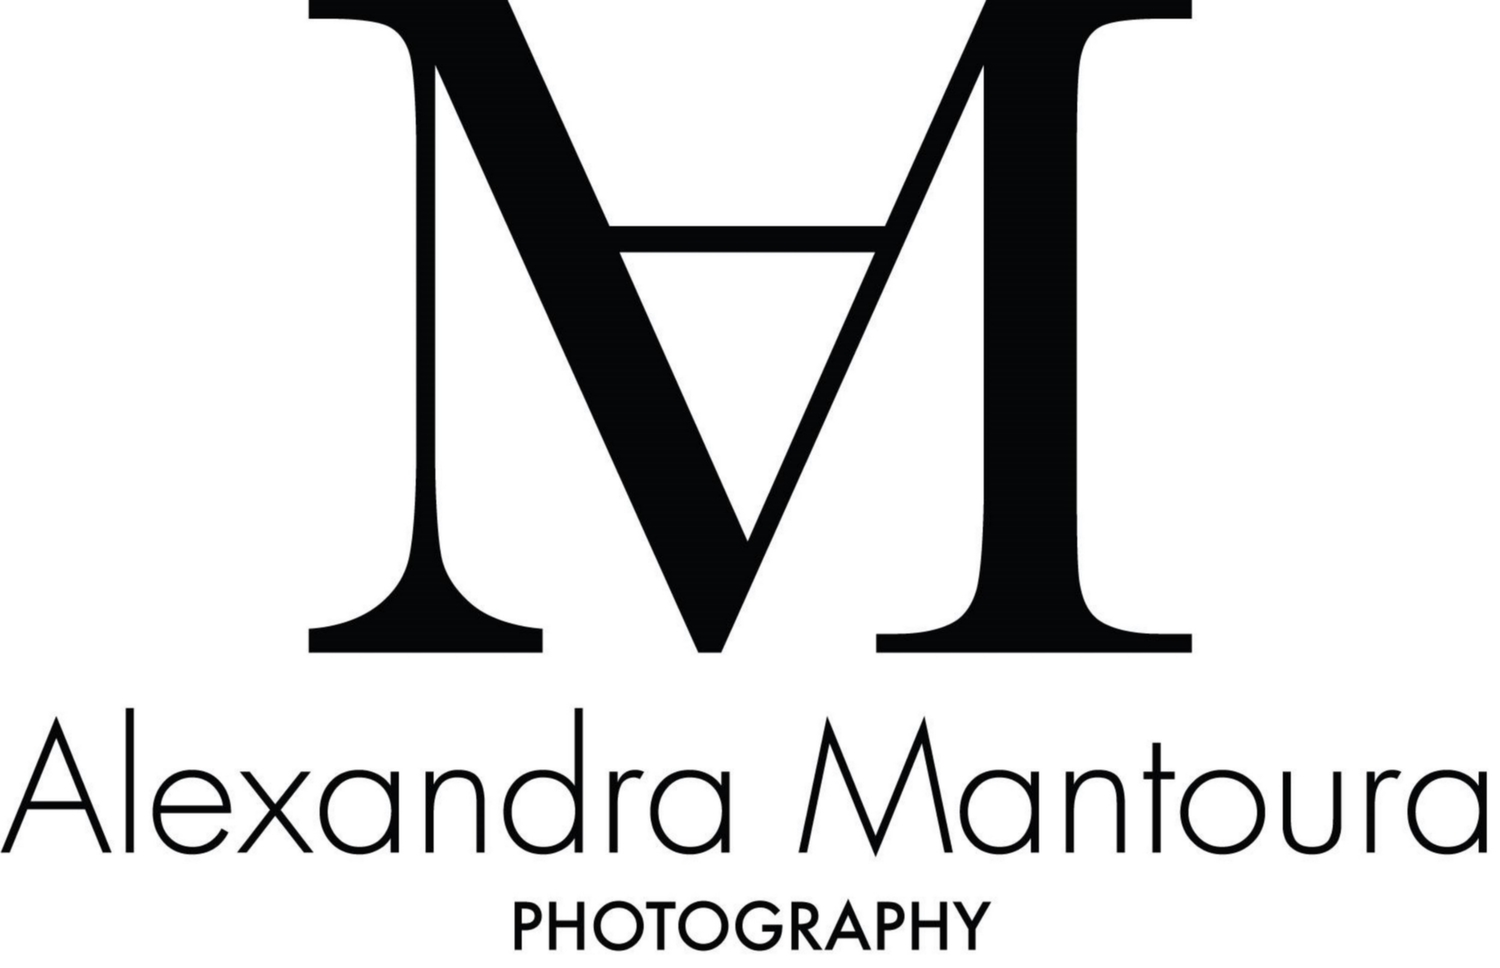 AM Photography-Alexandra Mantoura